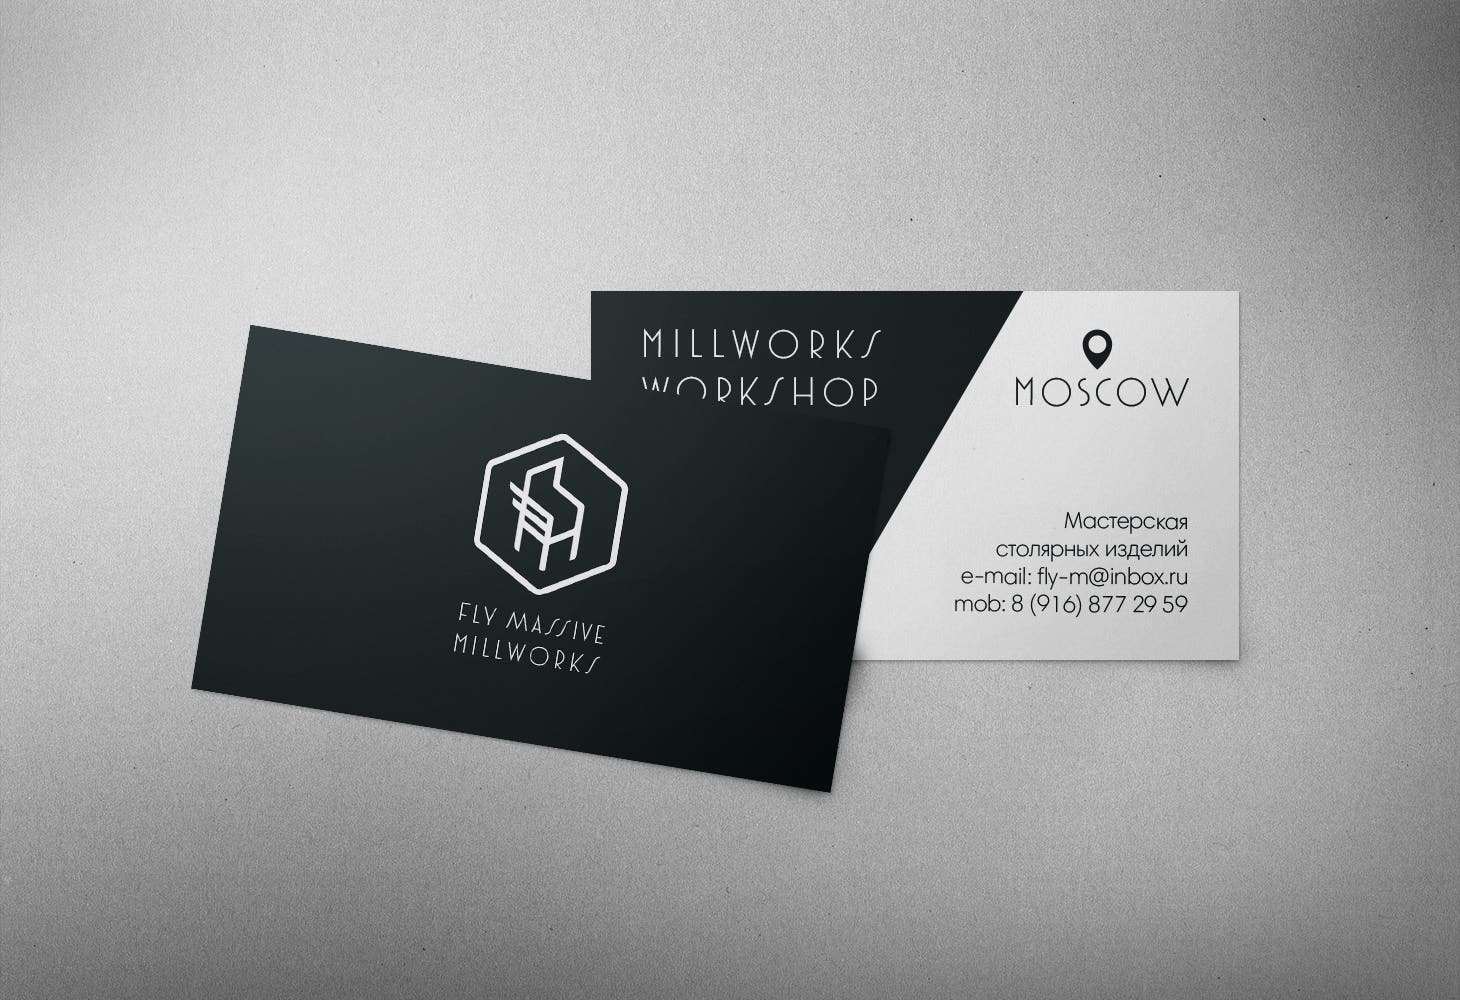 Business card for Fly Massive Millworks